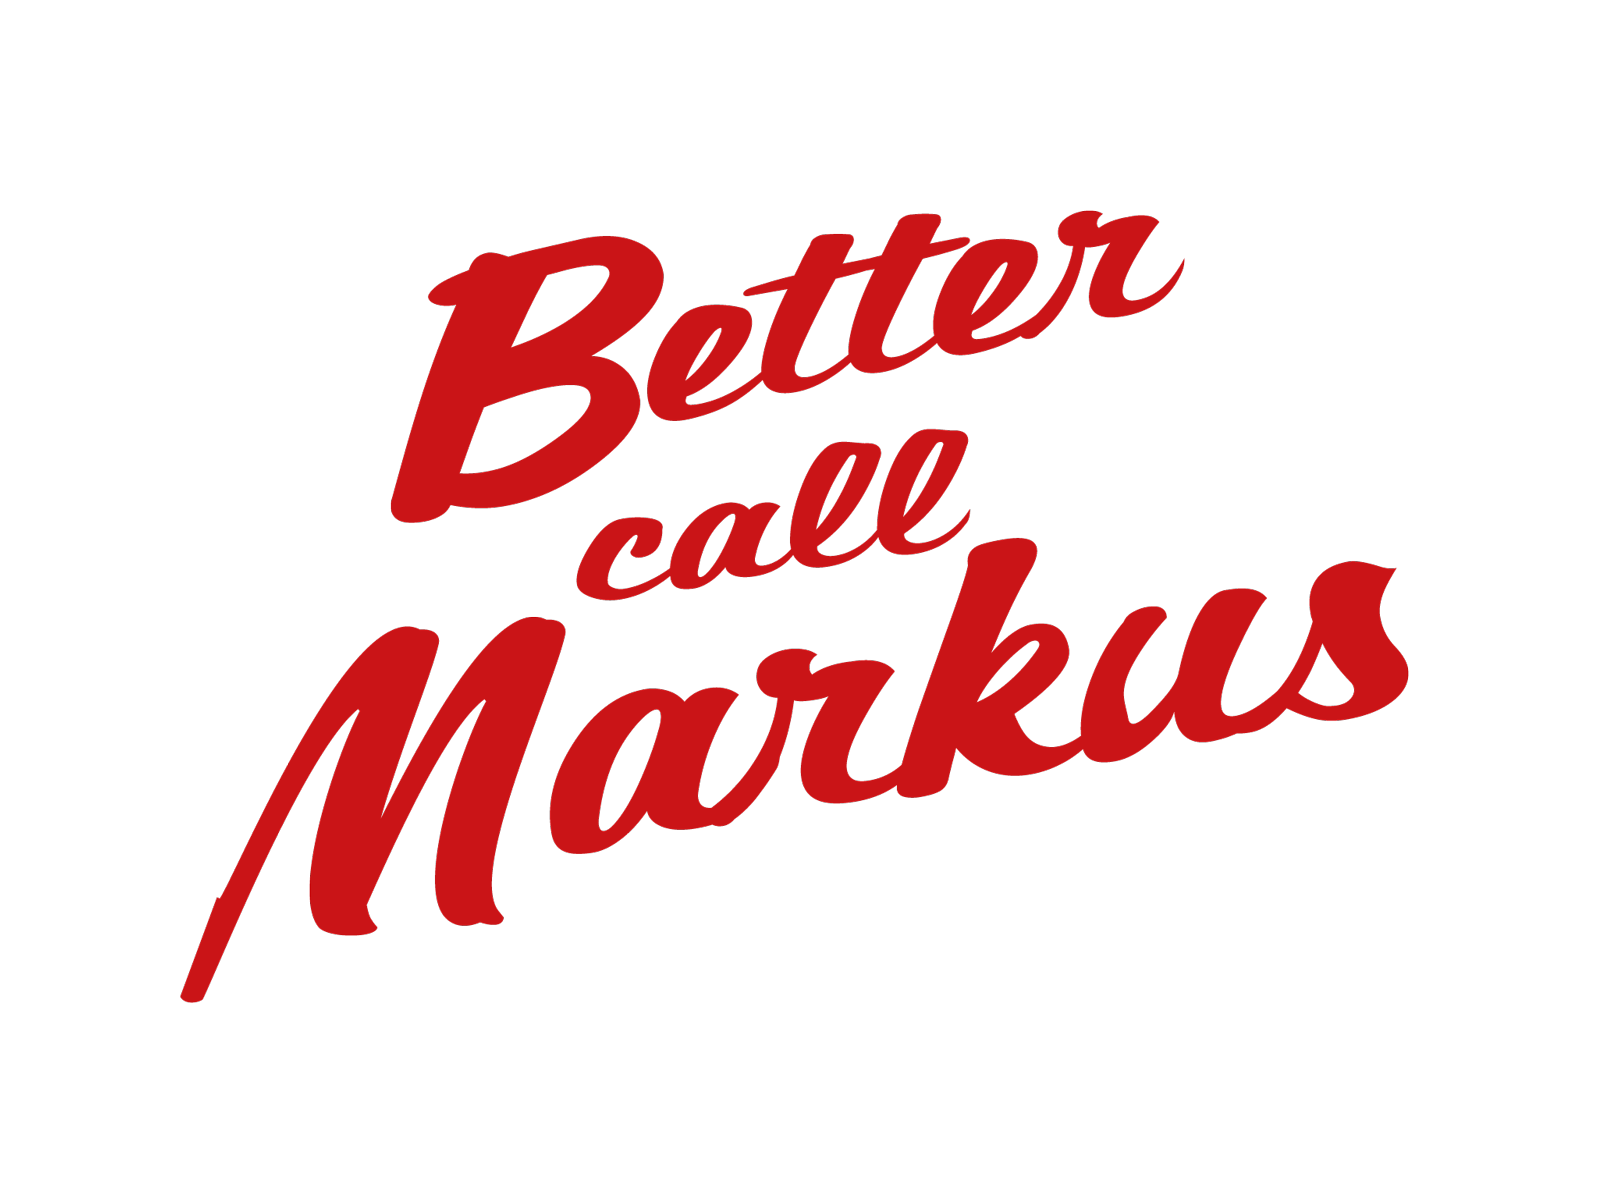 Better call Markus